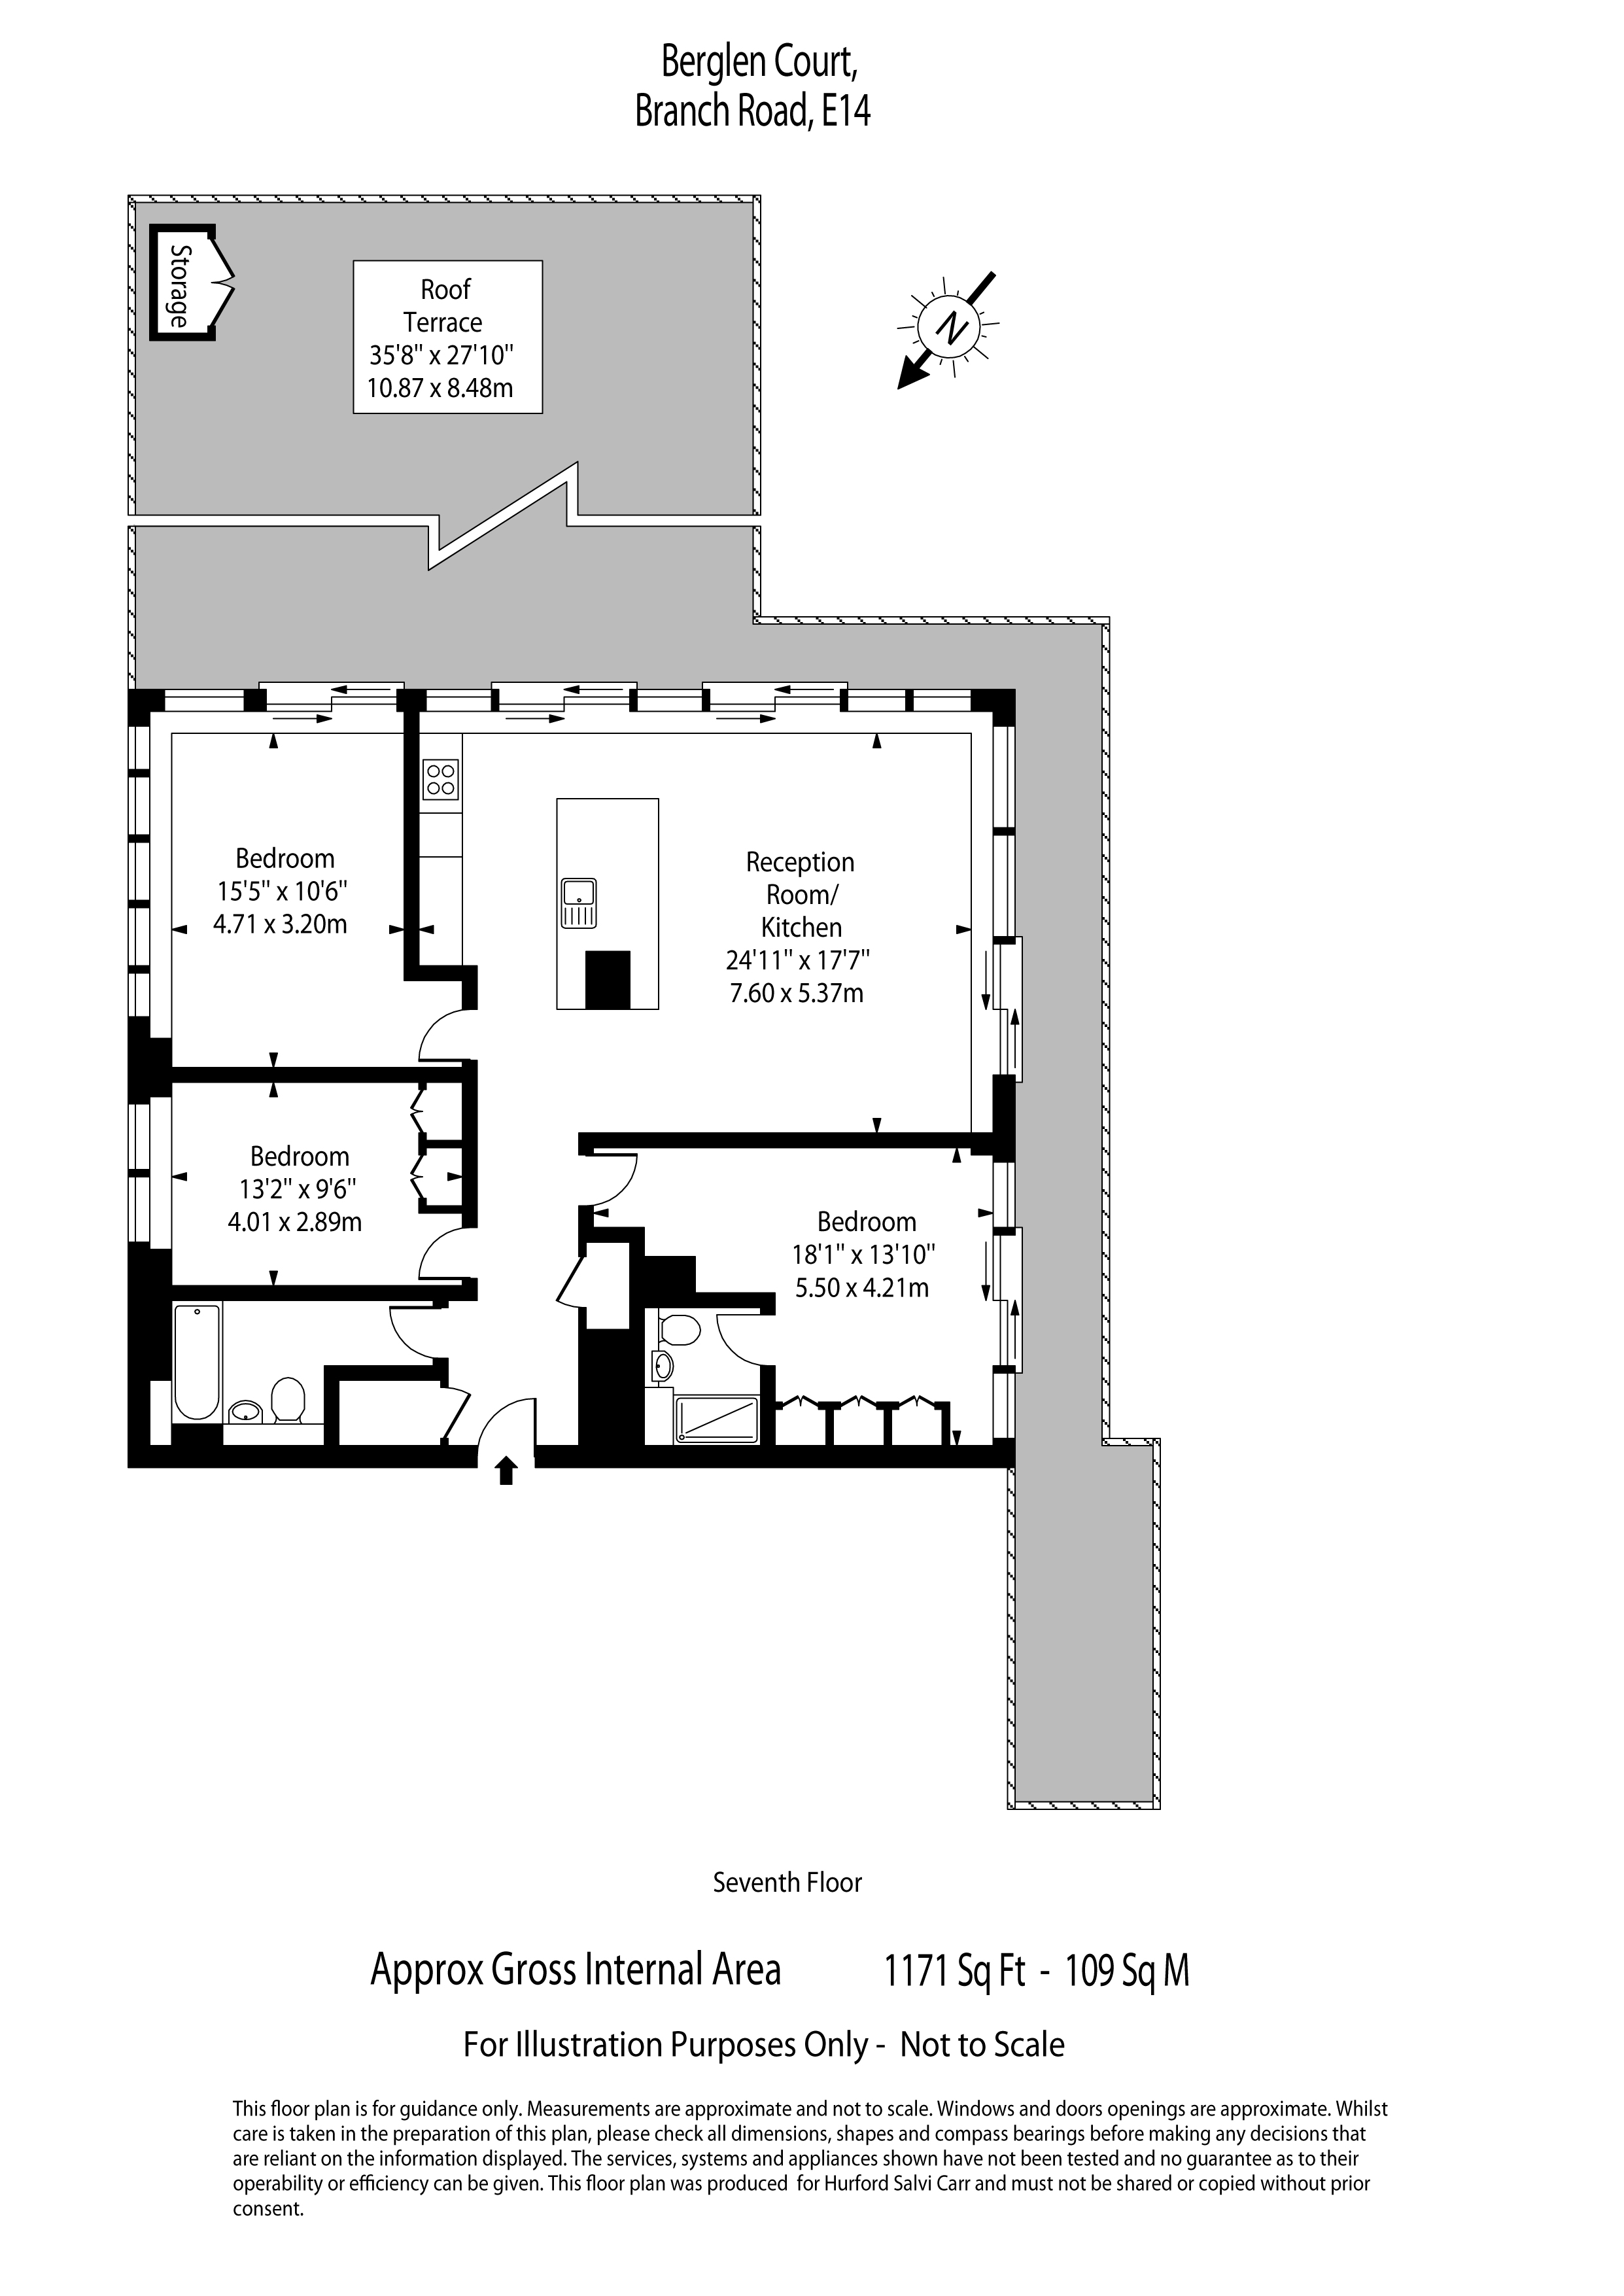 Berglen Court, 7 Branch Road, E14 floorplan